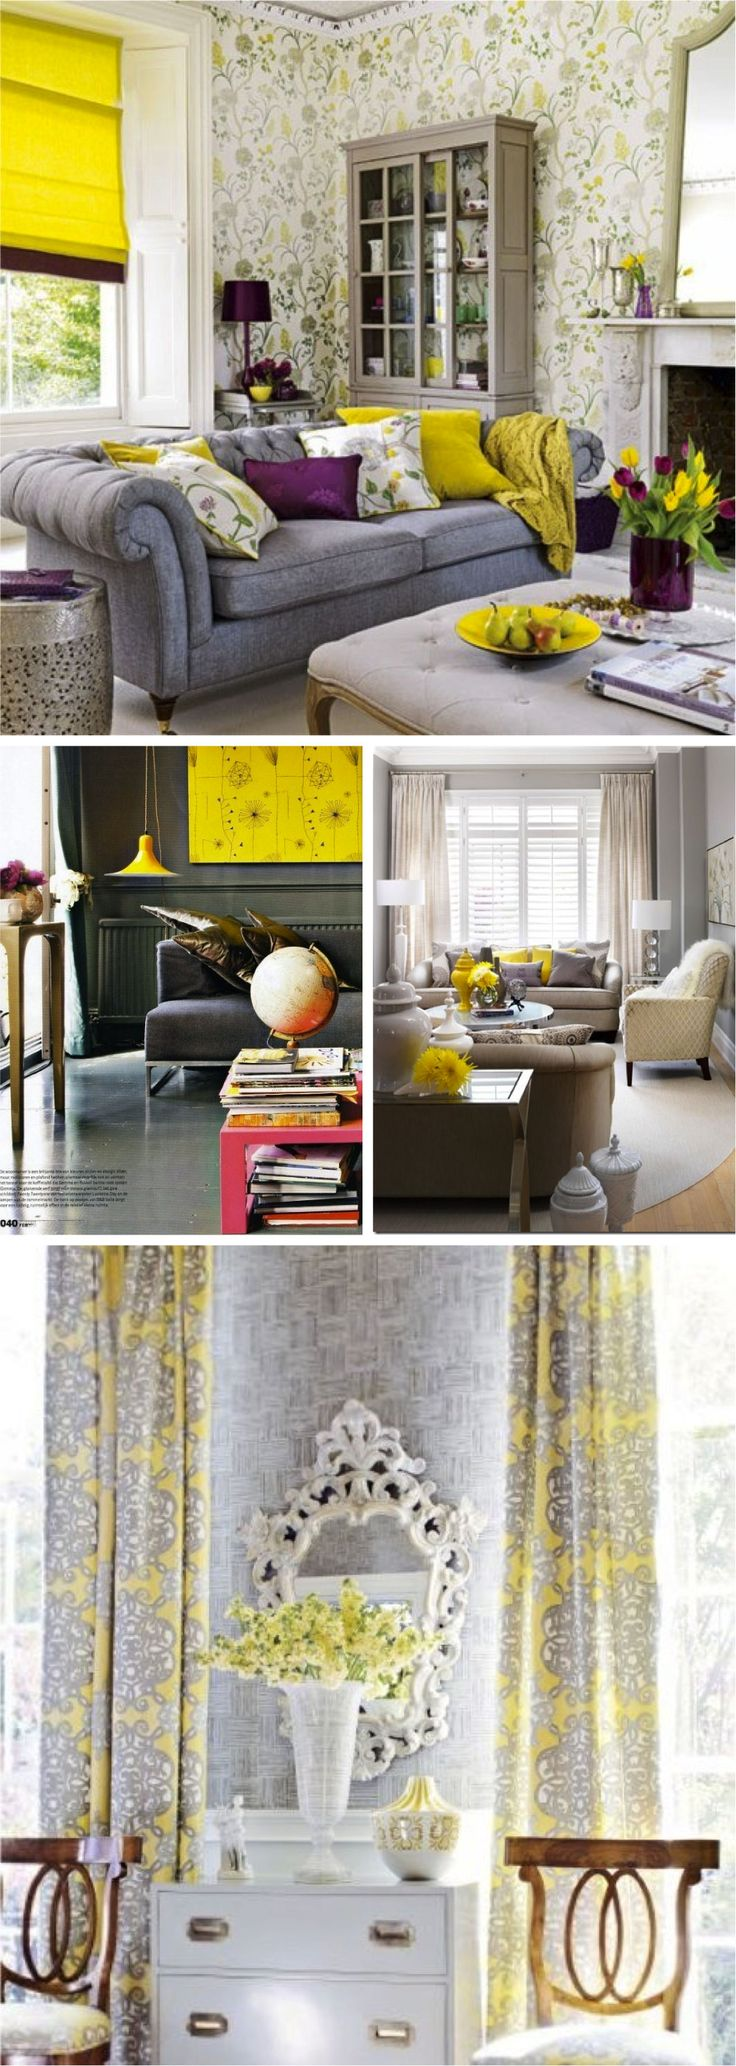 The Sofa And Shade Love These Dark Grey Walls Bright Yellow Accent Wallpaper Draperies In Bottom Gray Decor